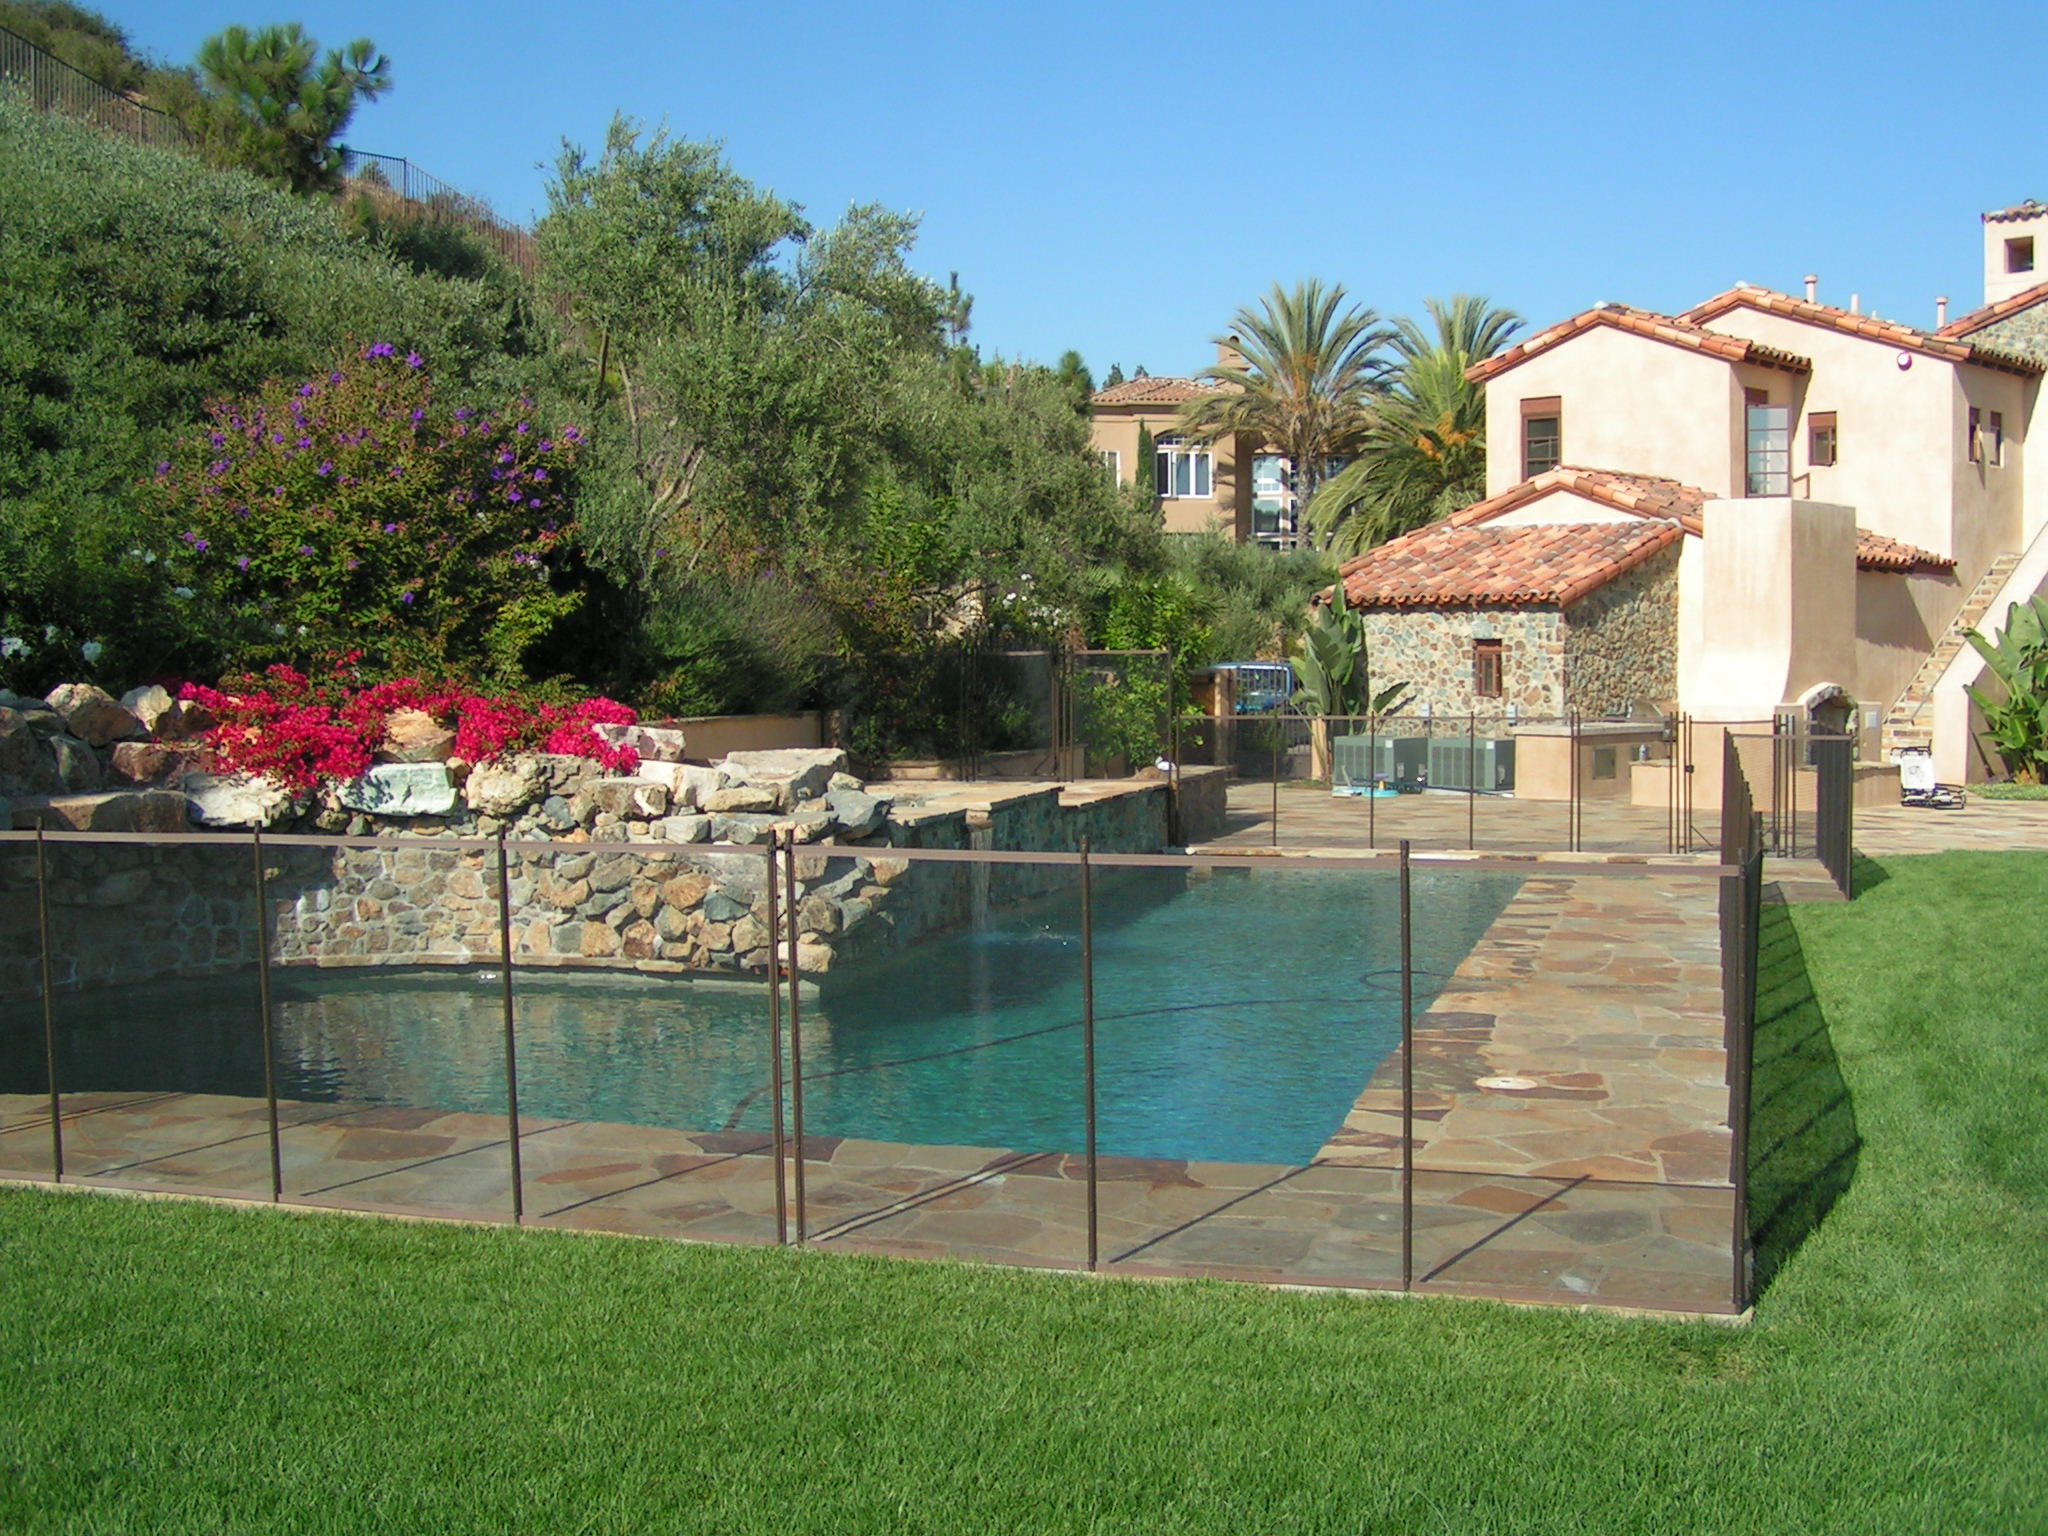 Pool Garten Zaun Removable Pool Fences Poolsafe Pool Fences And Covers